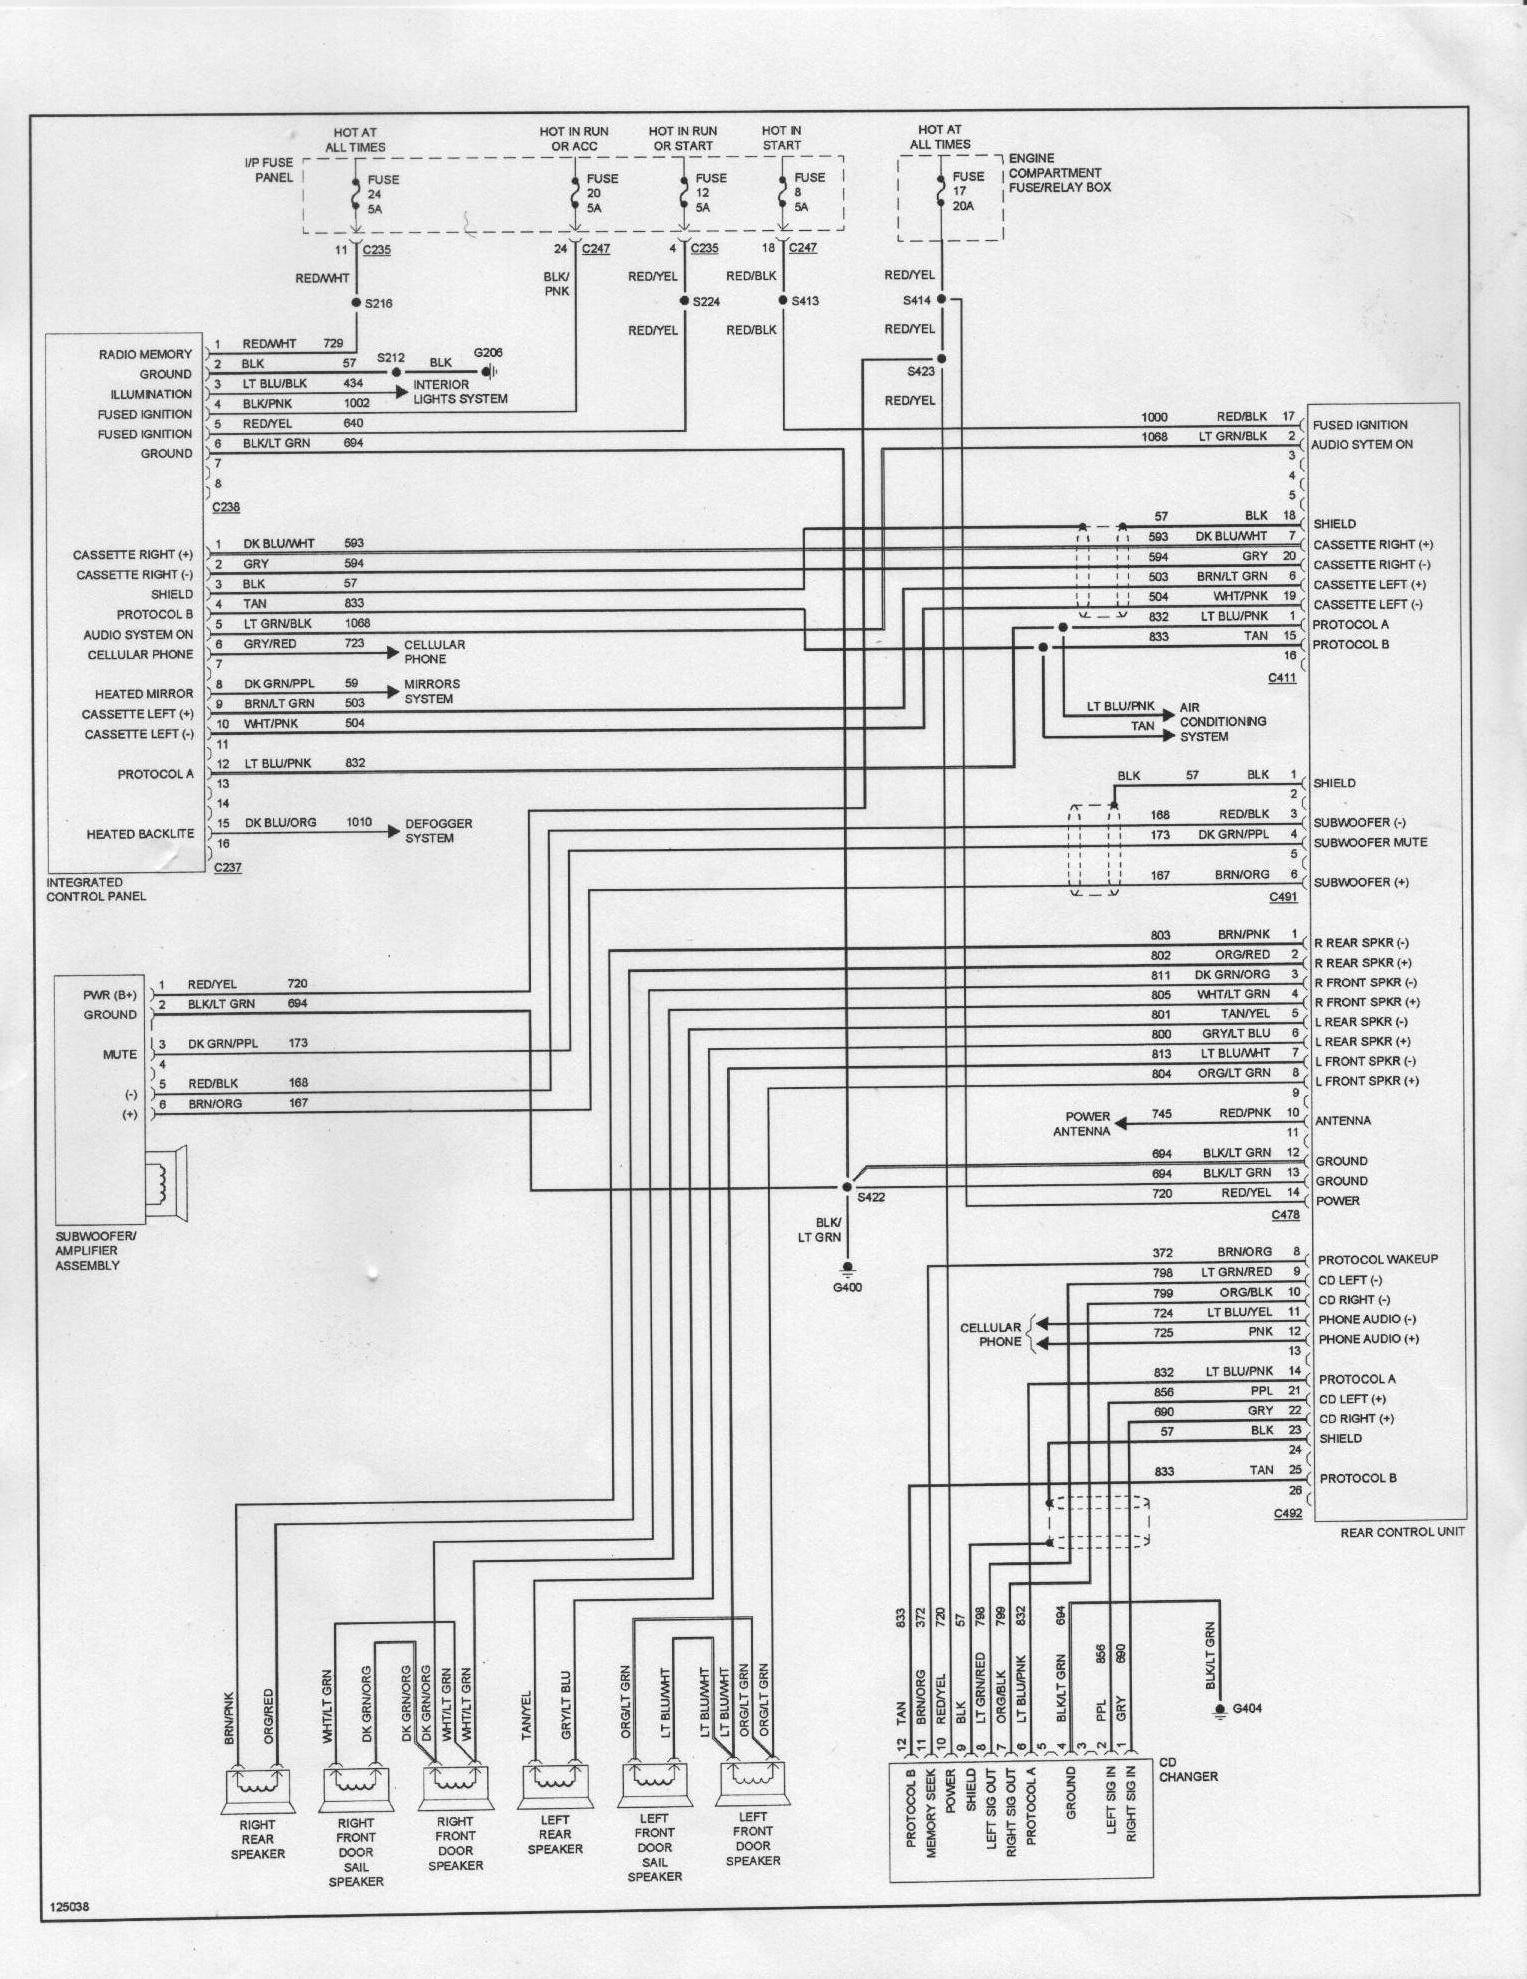 46509d1178551791 scosche orange wire _______ diagram96 scosche gm 3000 wiring diagram foscam wiring diagram \u2022 free wiring scosche cr012 wiring diagram at creativeand.co